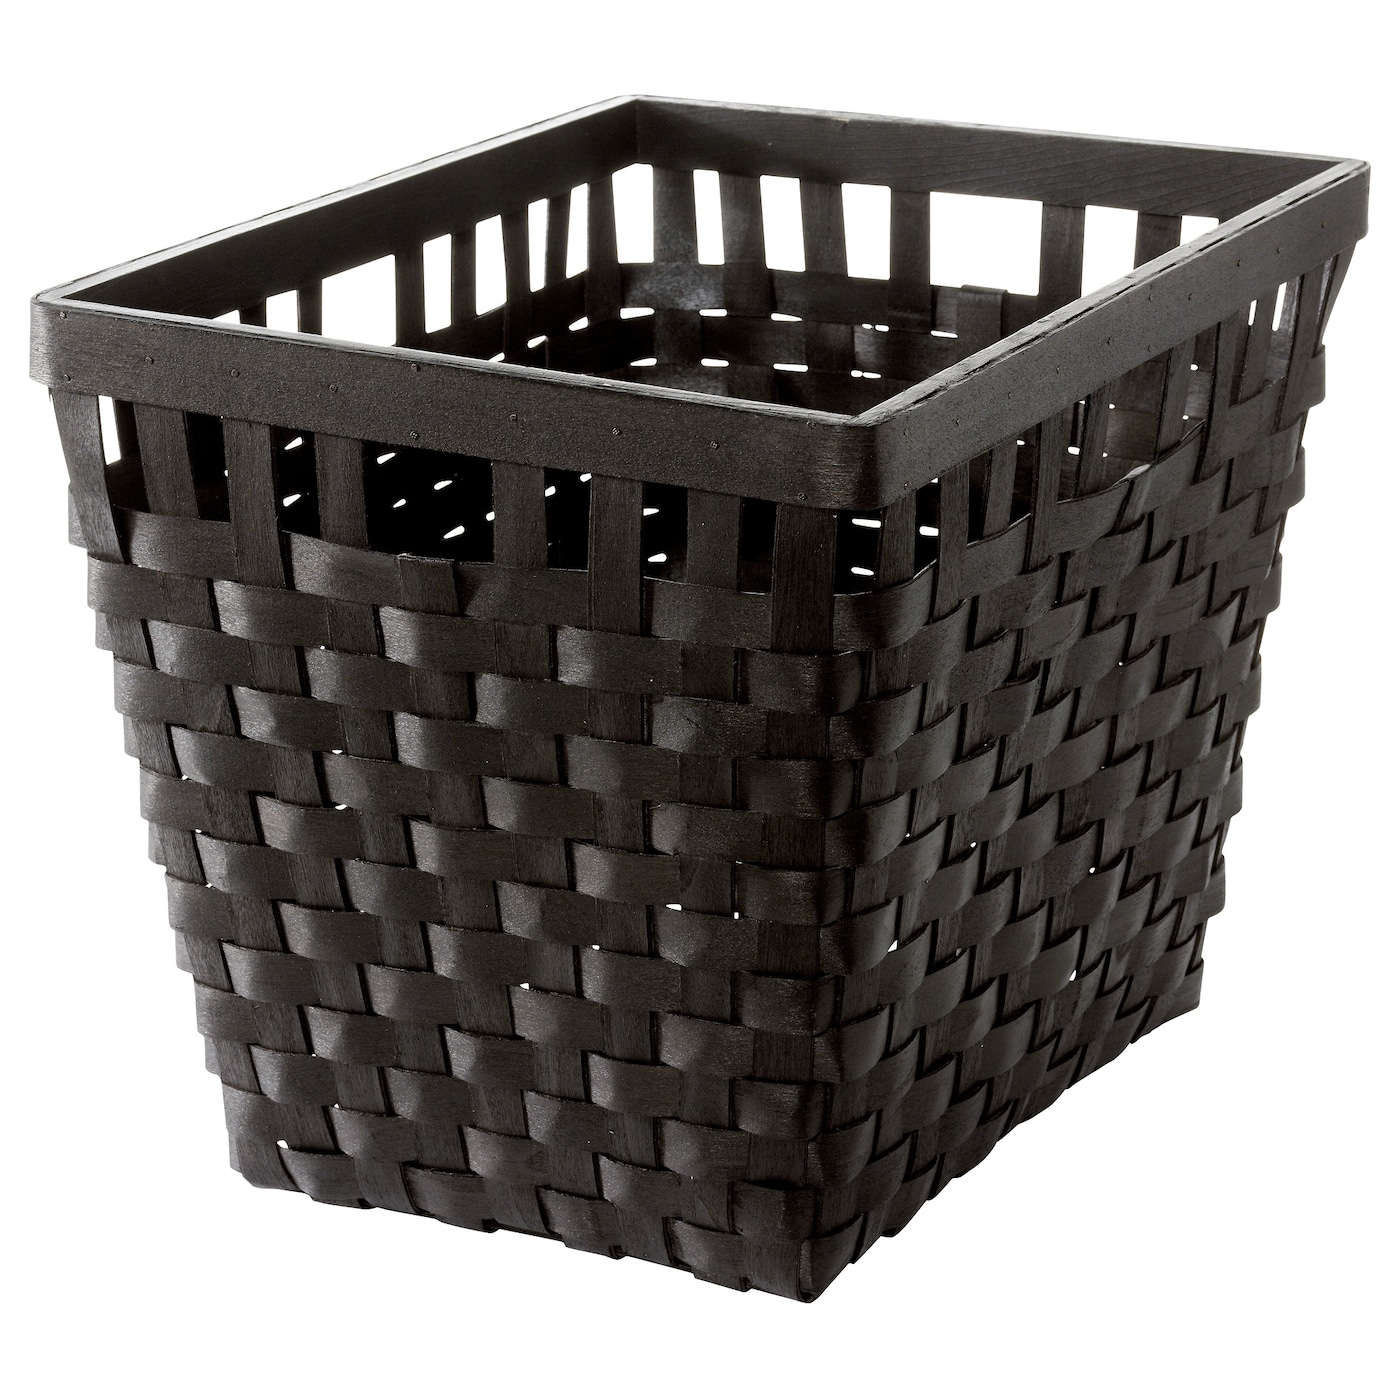 IKEA KNARRA basket Each basket is woven by hand and is therefore unique.